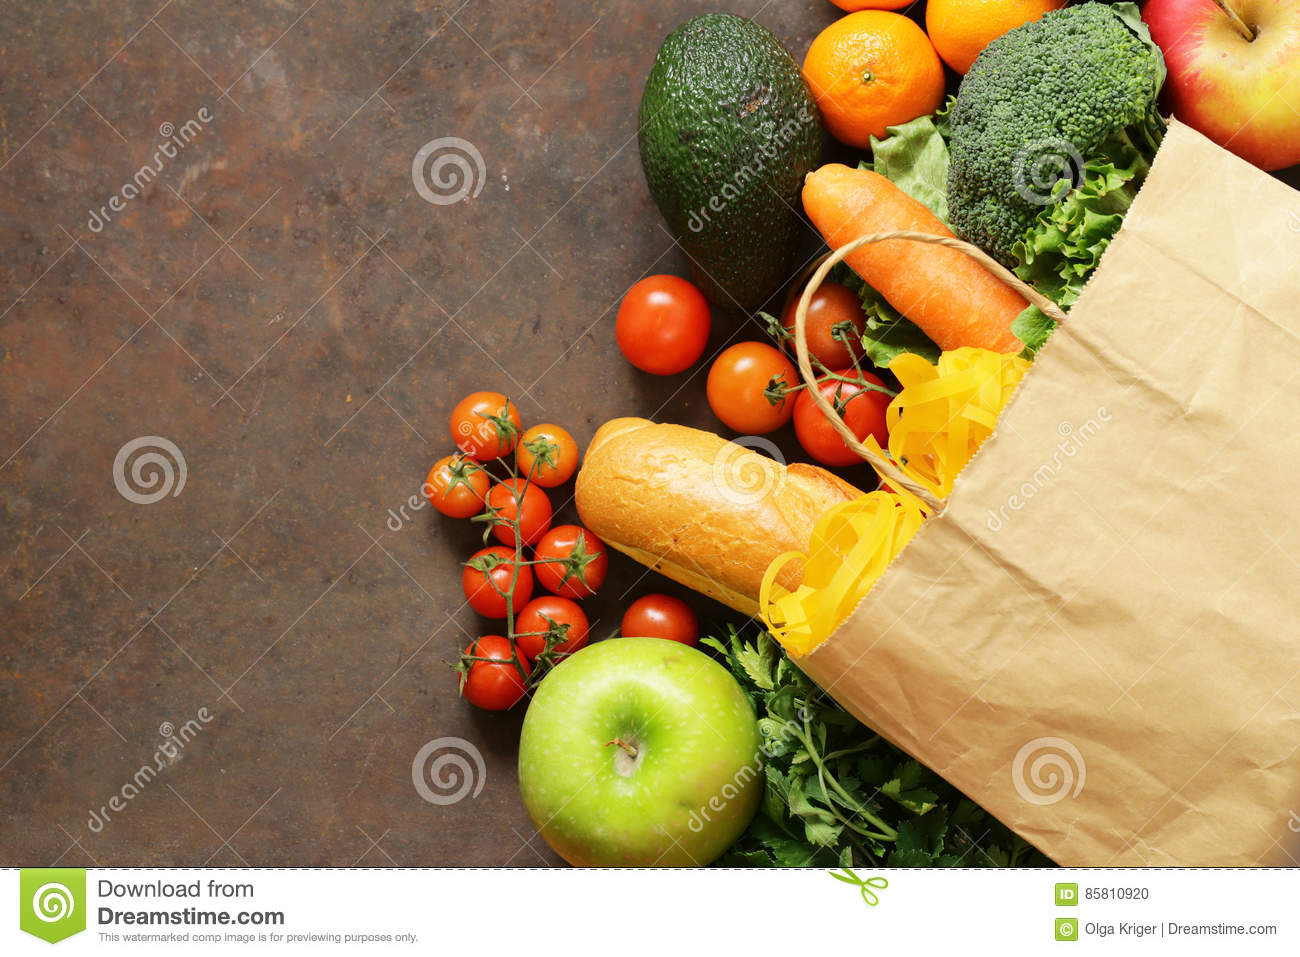 Grocery food shopping bag - vegetables, fruits, bread